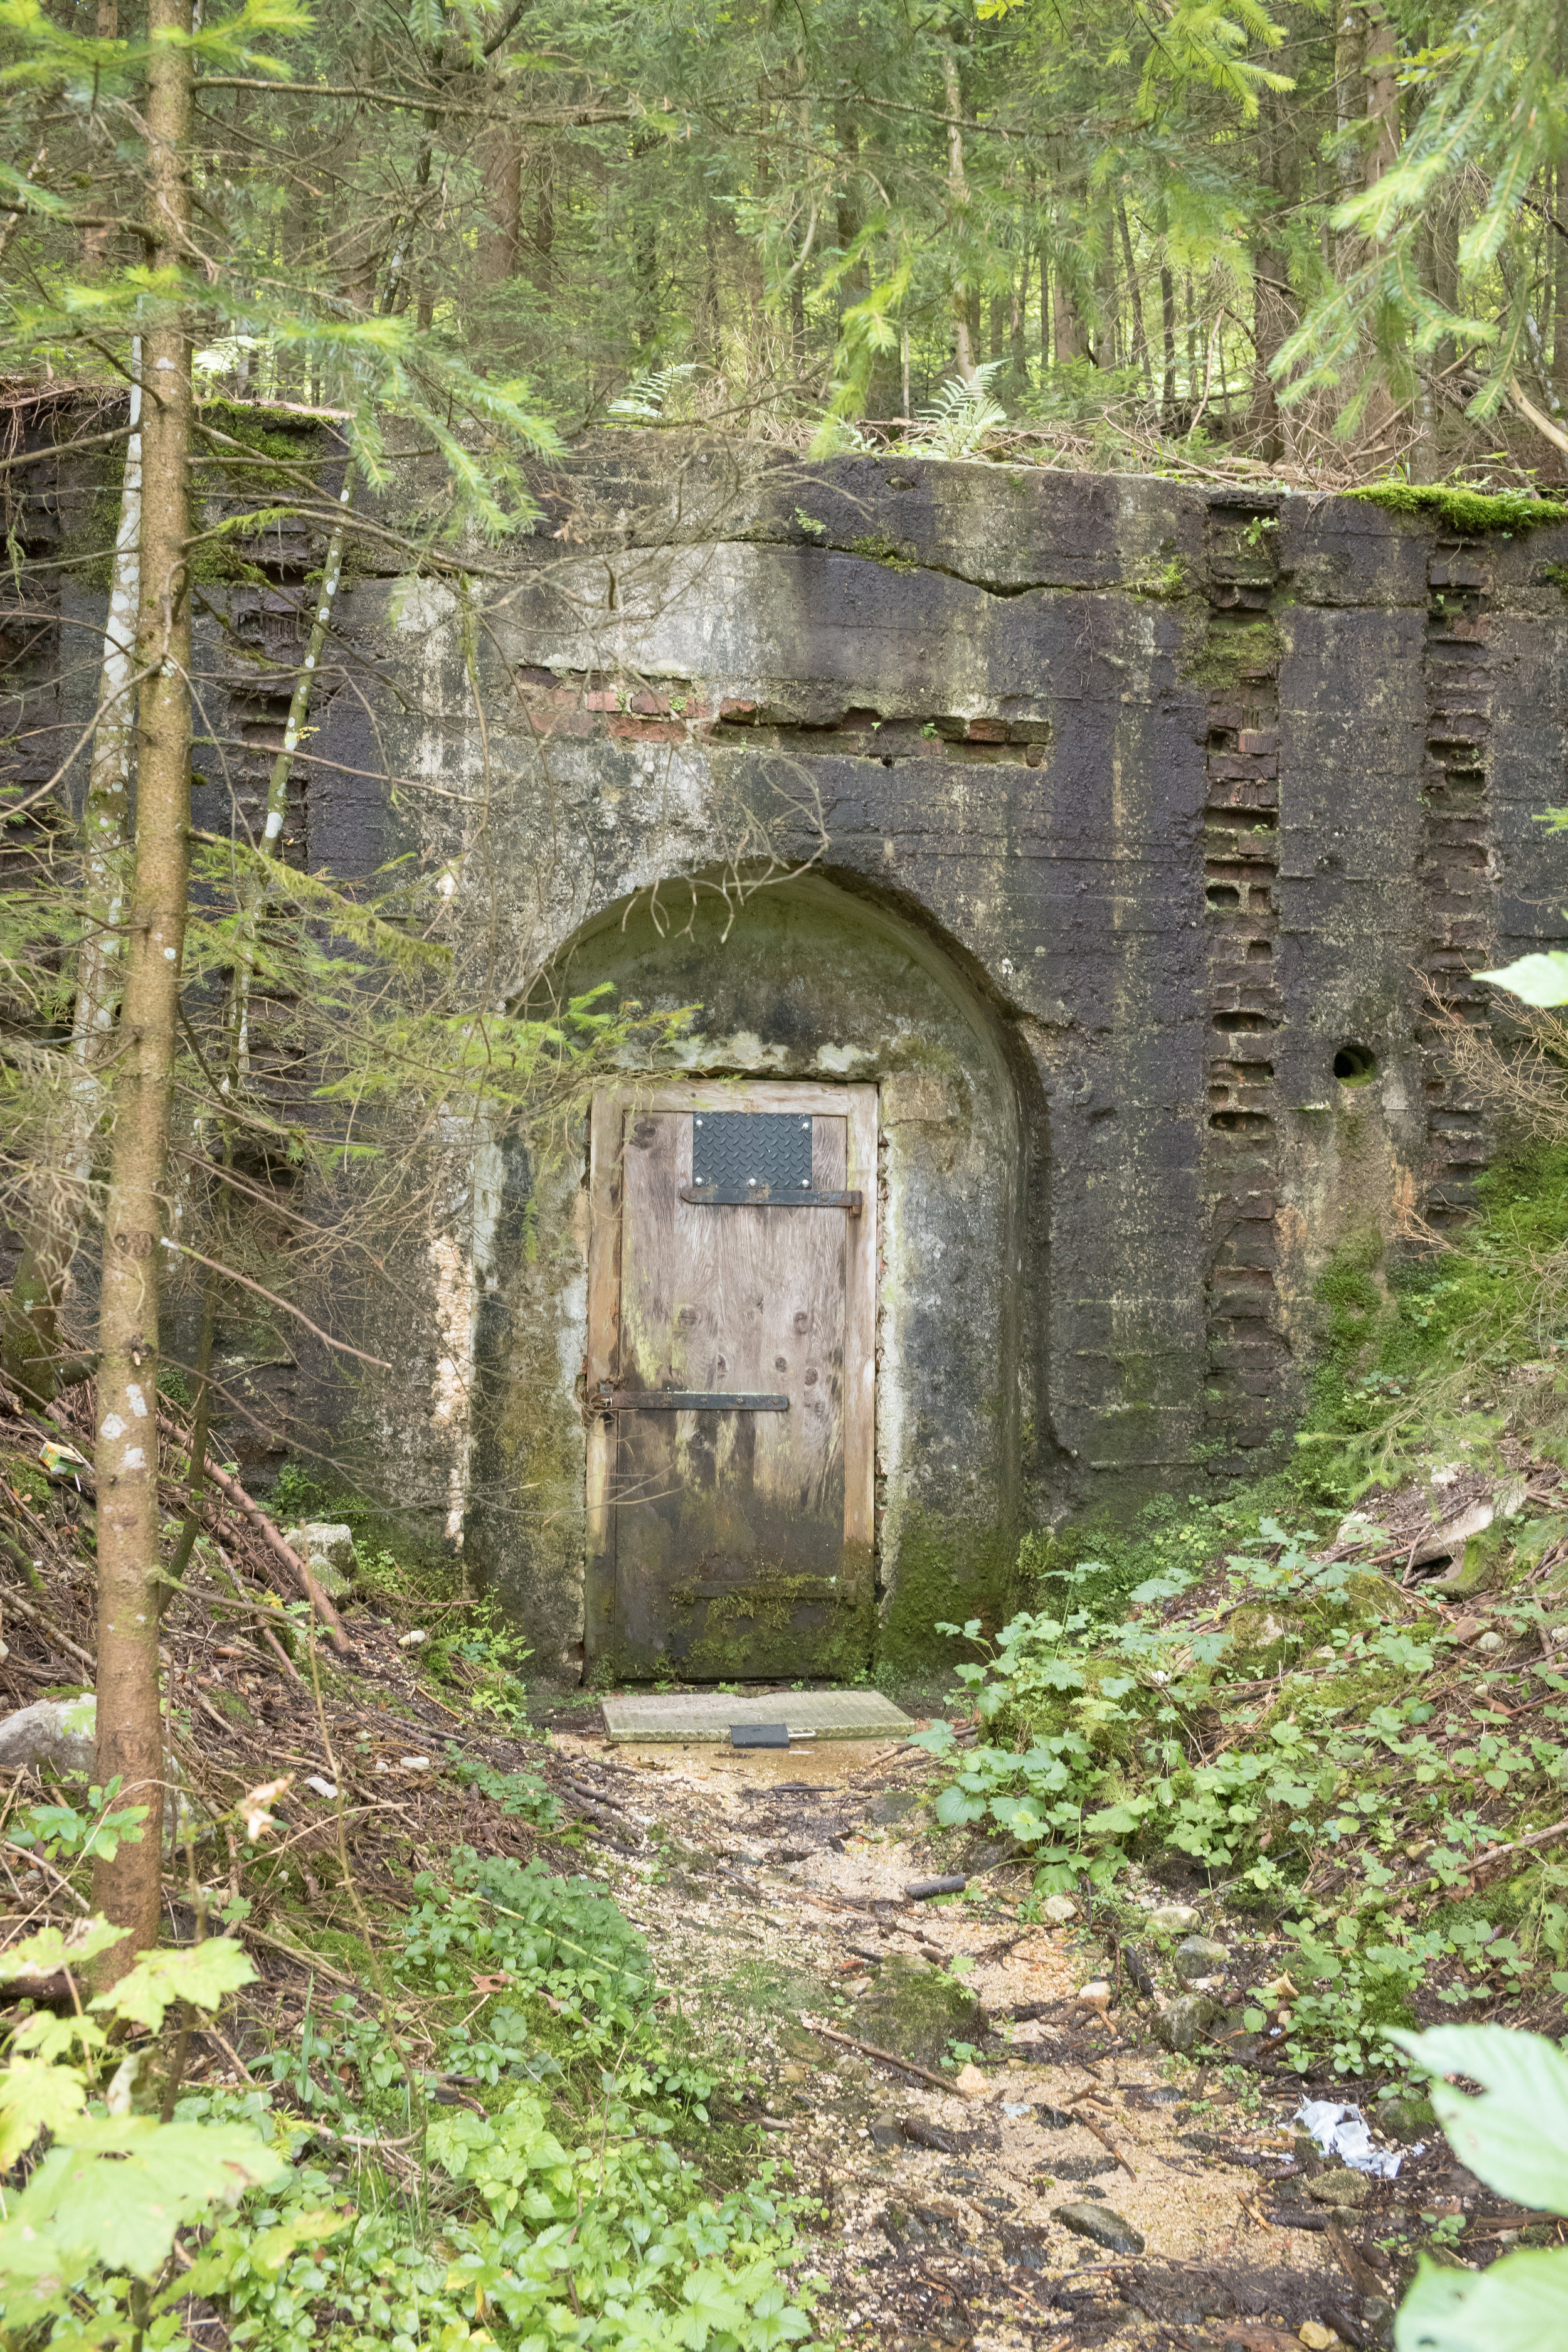 Obersalzburg: Remnant of bunker system engineered by my great uncle.